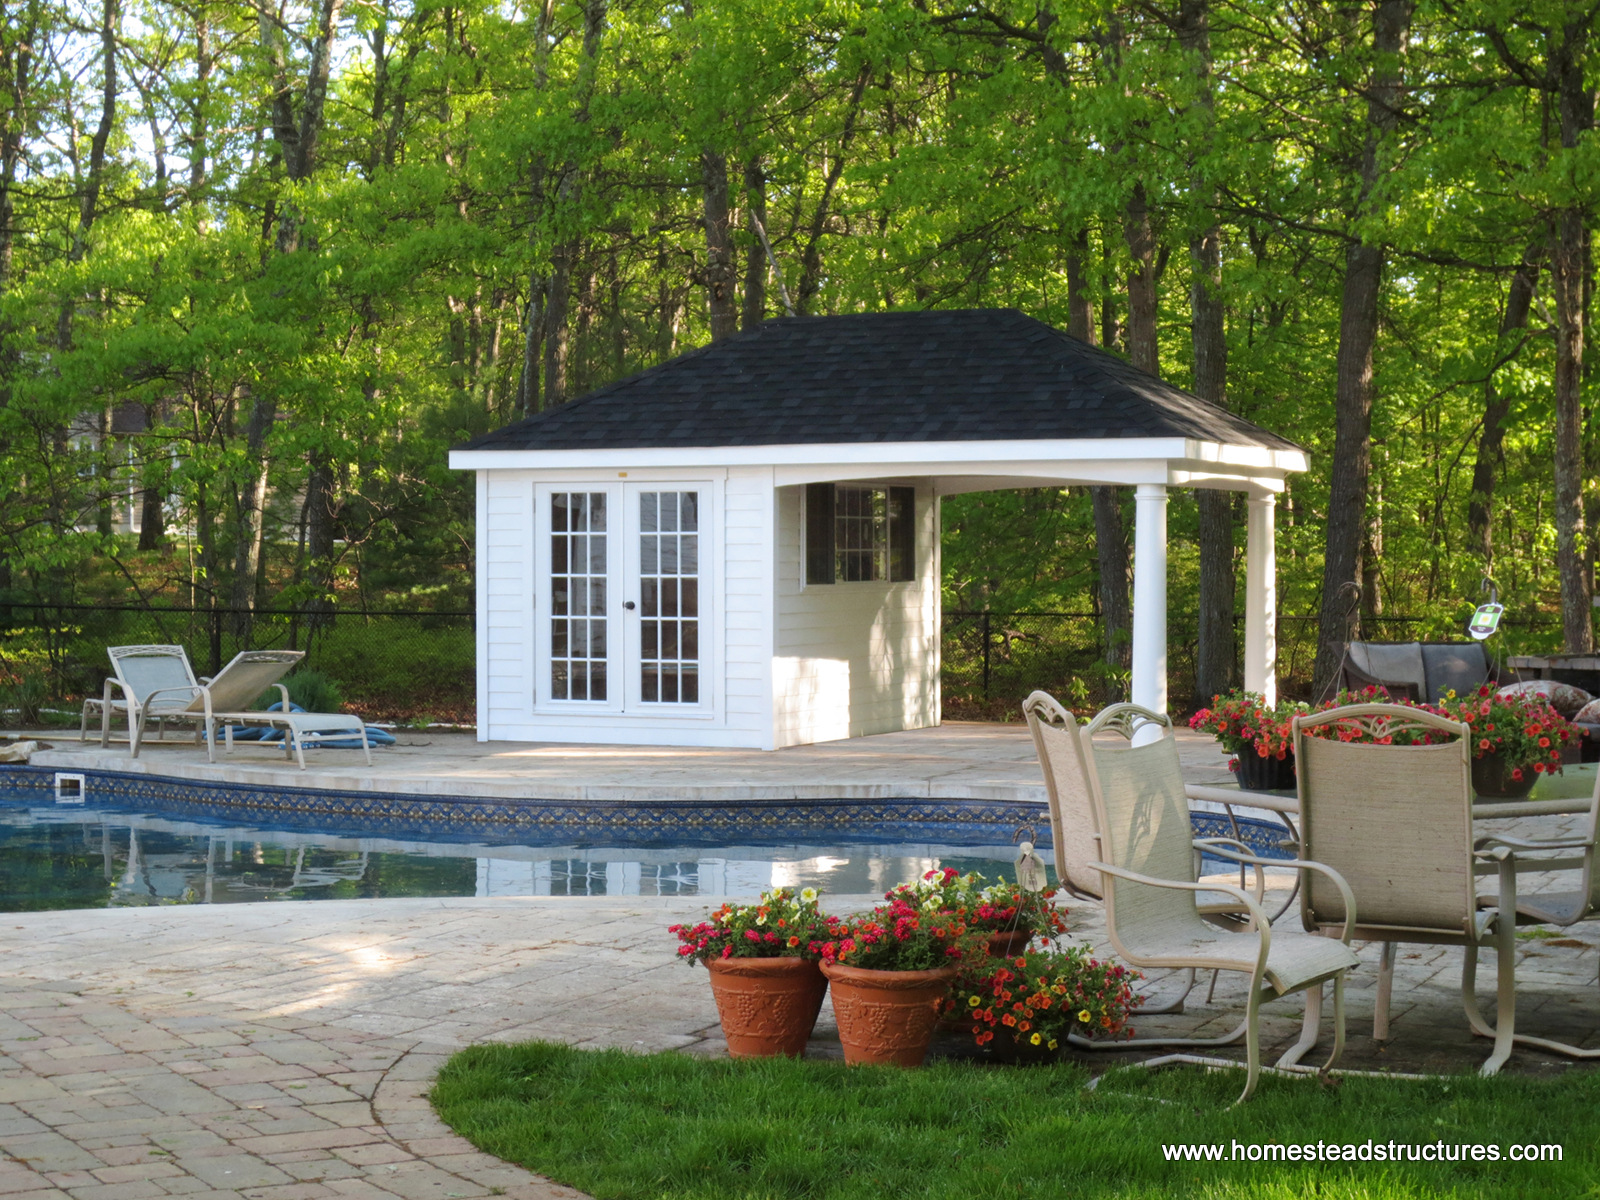 Pool House Cabana Plans: Homestead Structures